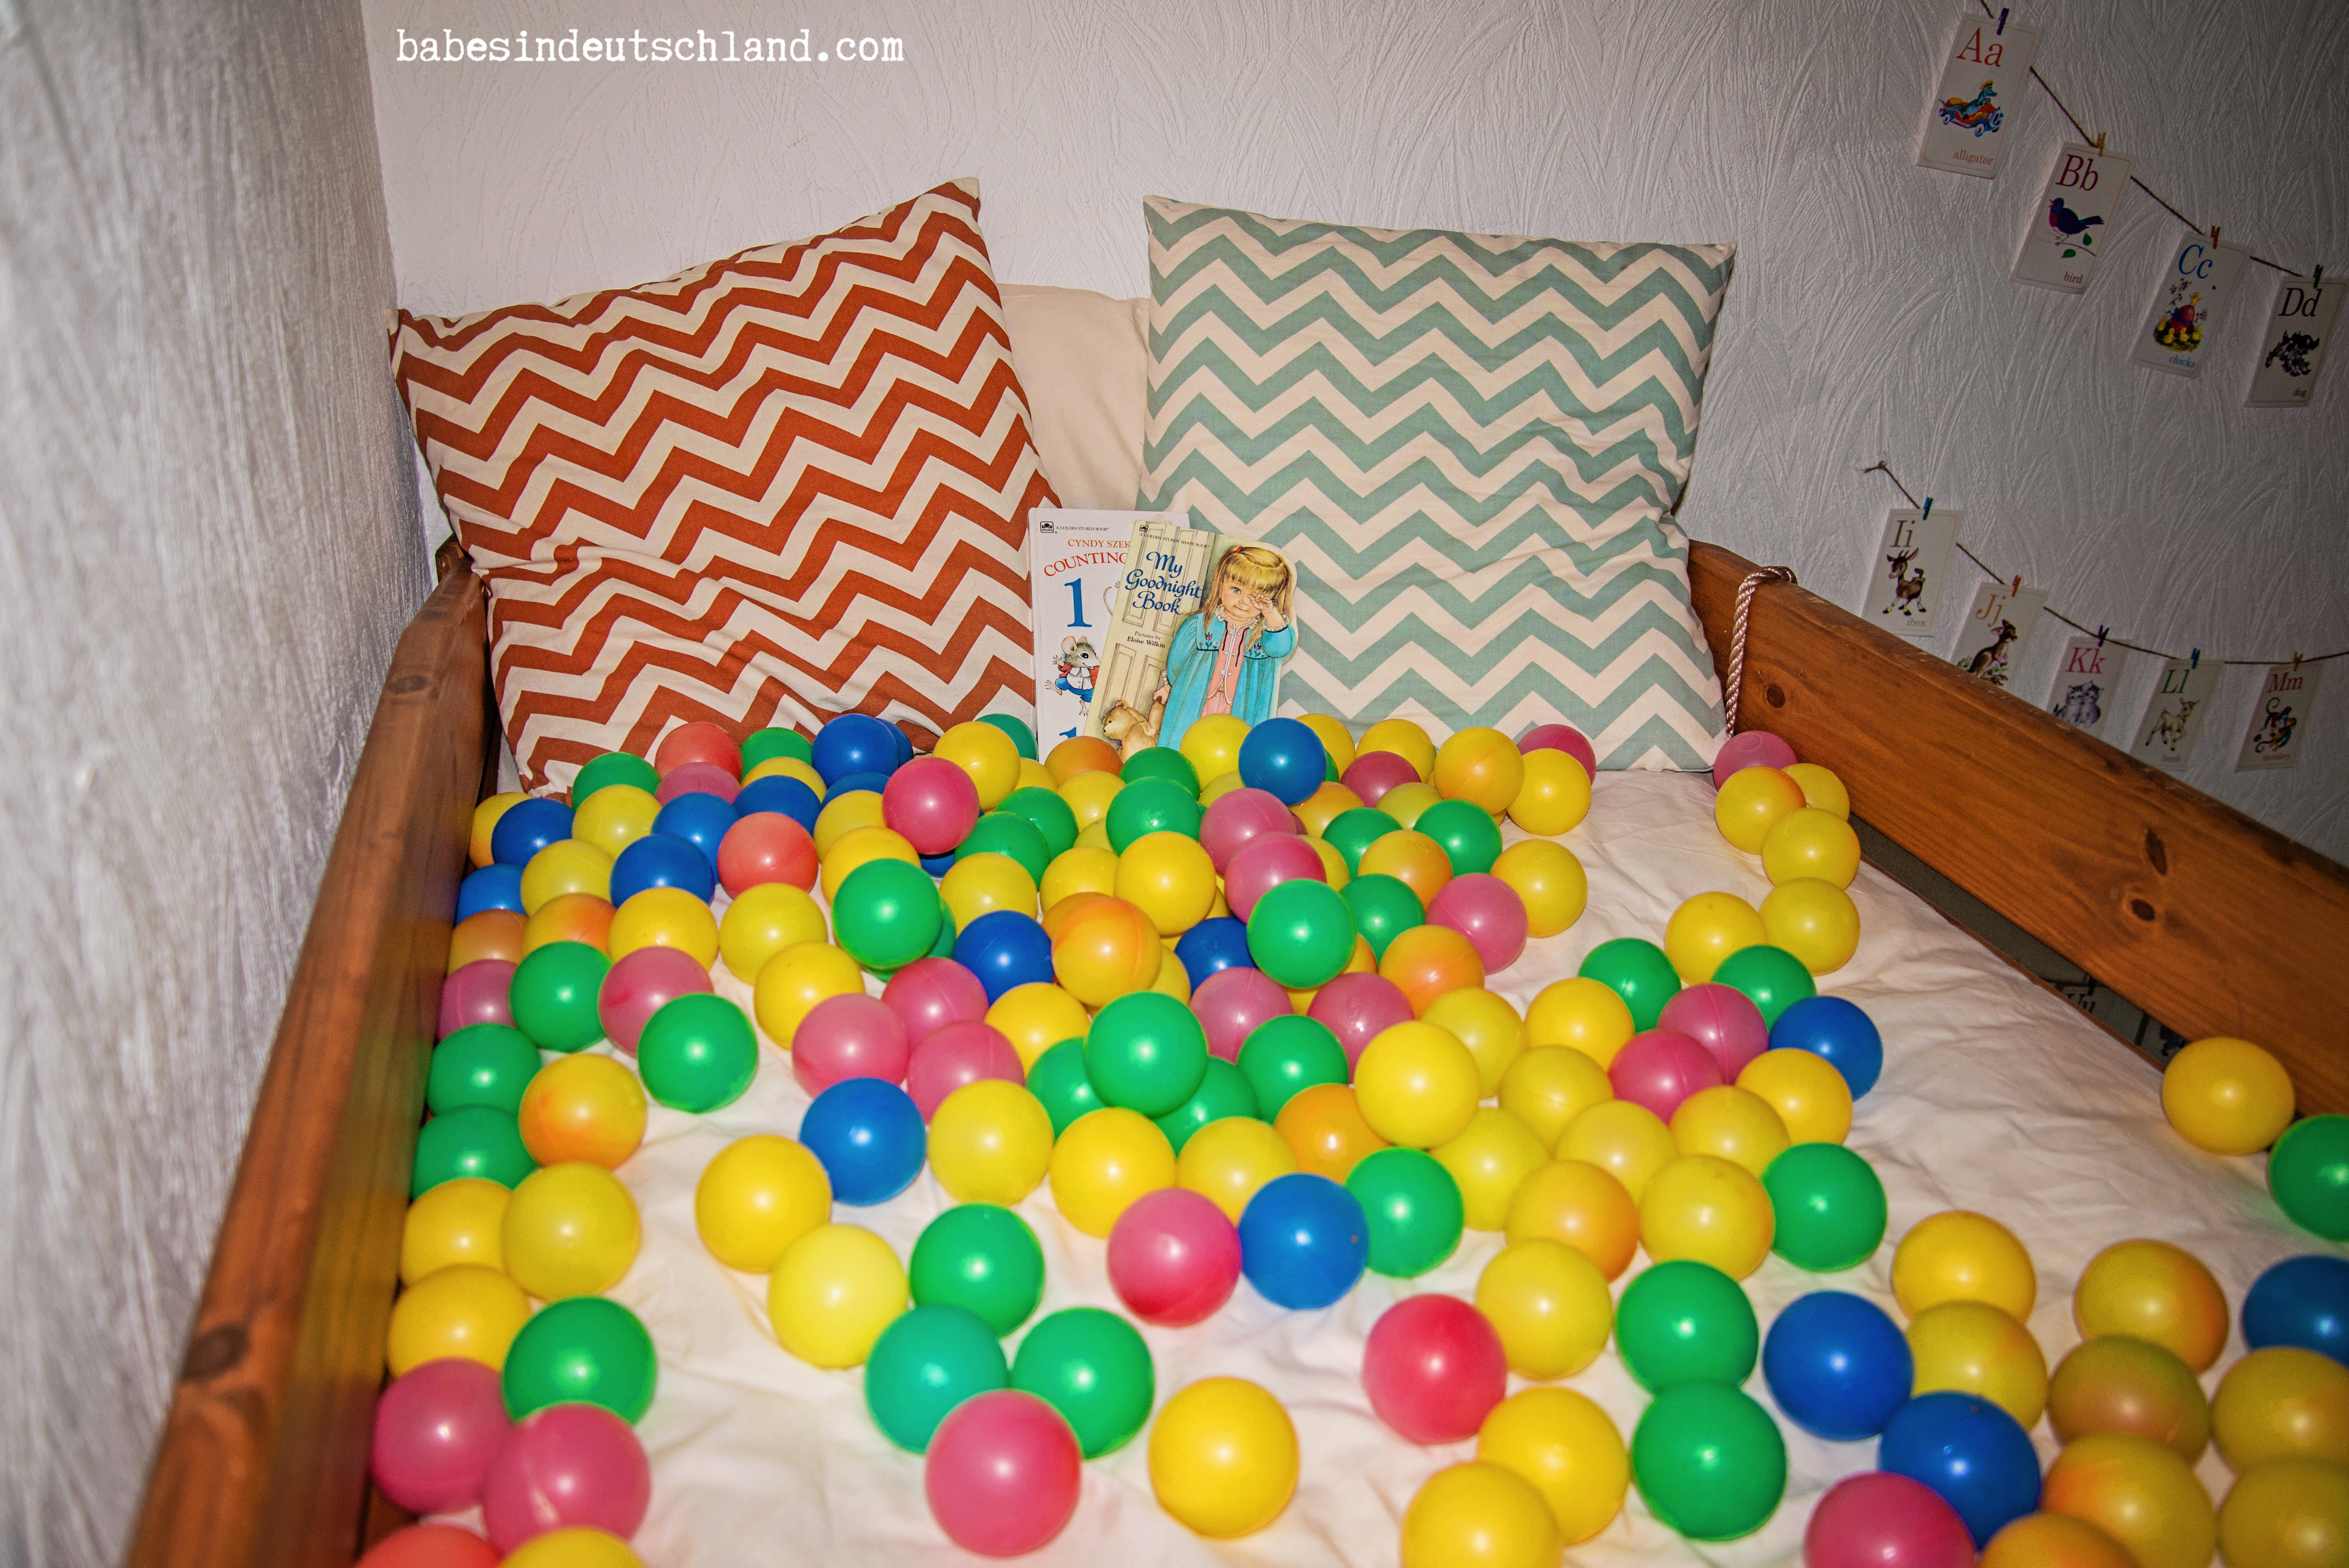 Babes in Deutschland, use a loft bed as a ball pit/reading nook!